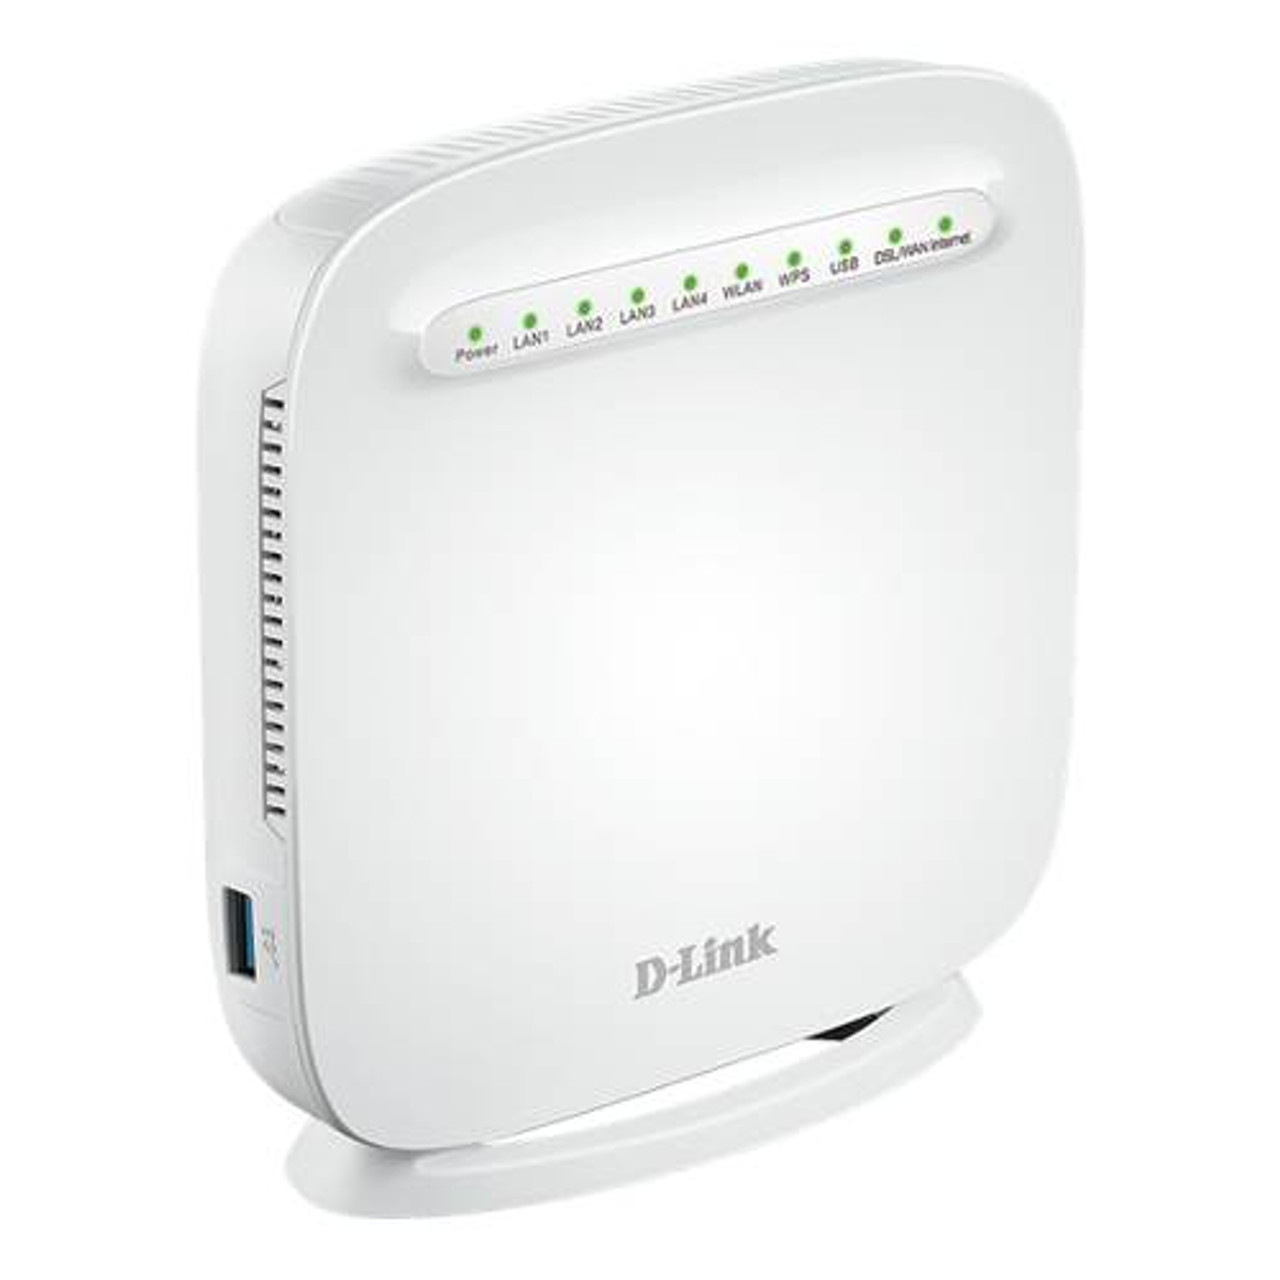 Product image for D-Link DSL-G225 Wireless N300 ADSL2+/VDSL2 Modem Router - NBN Ready | CX Computer Superstore